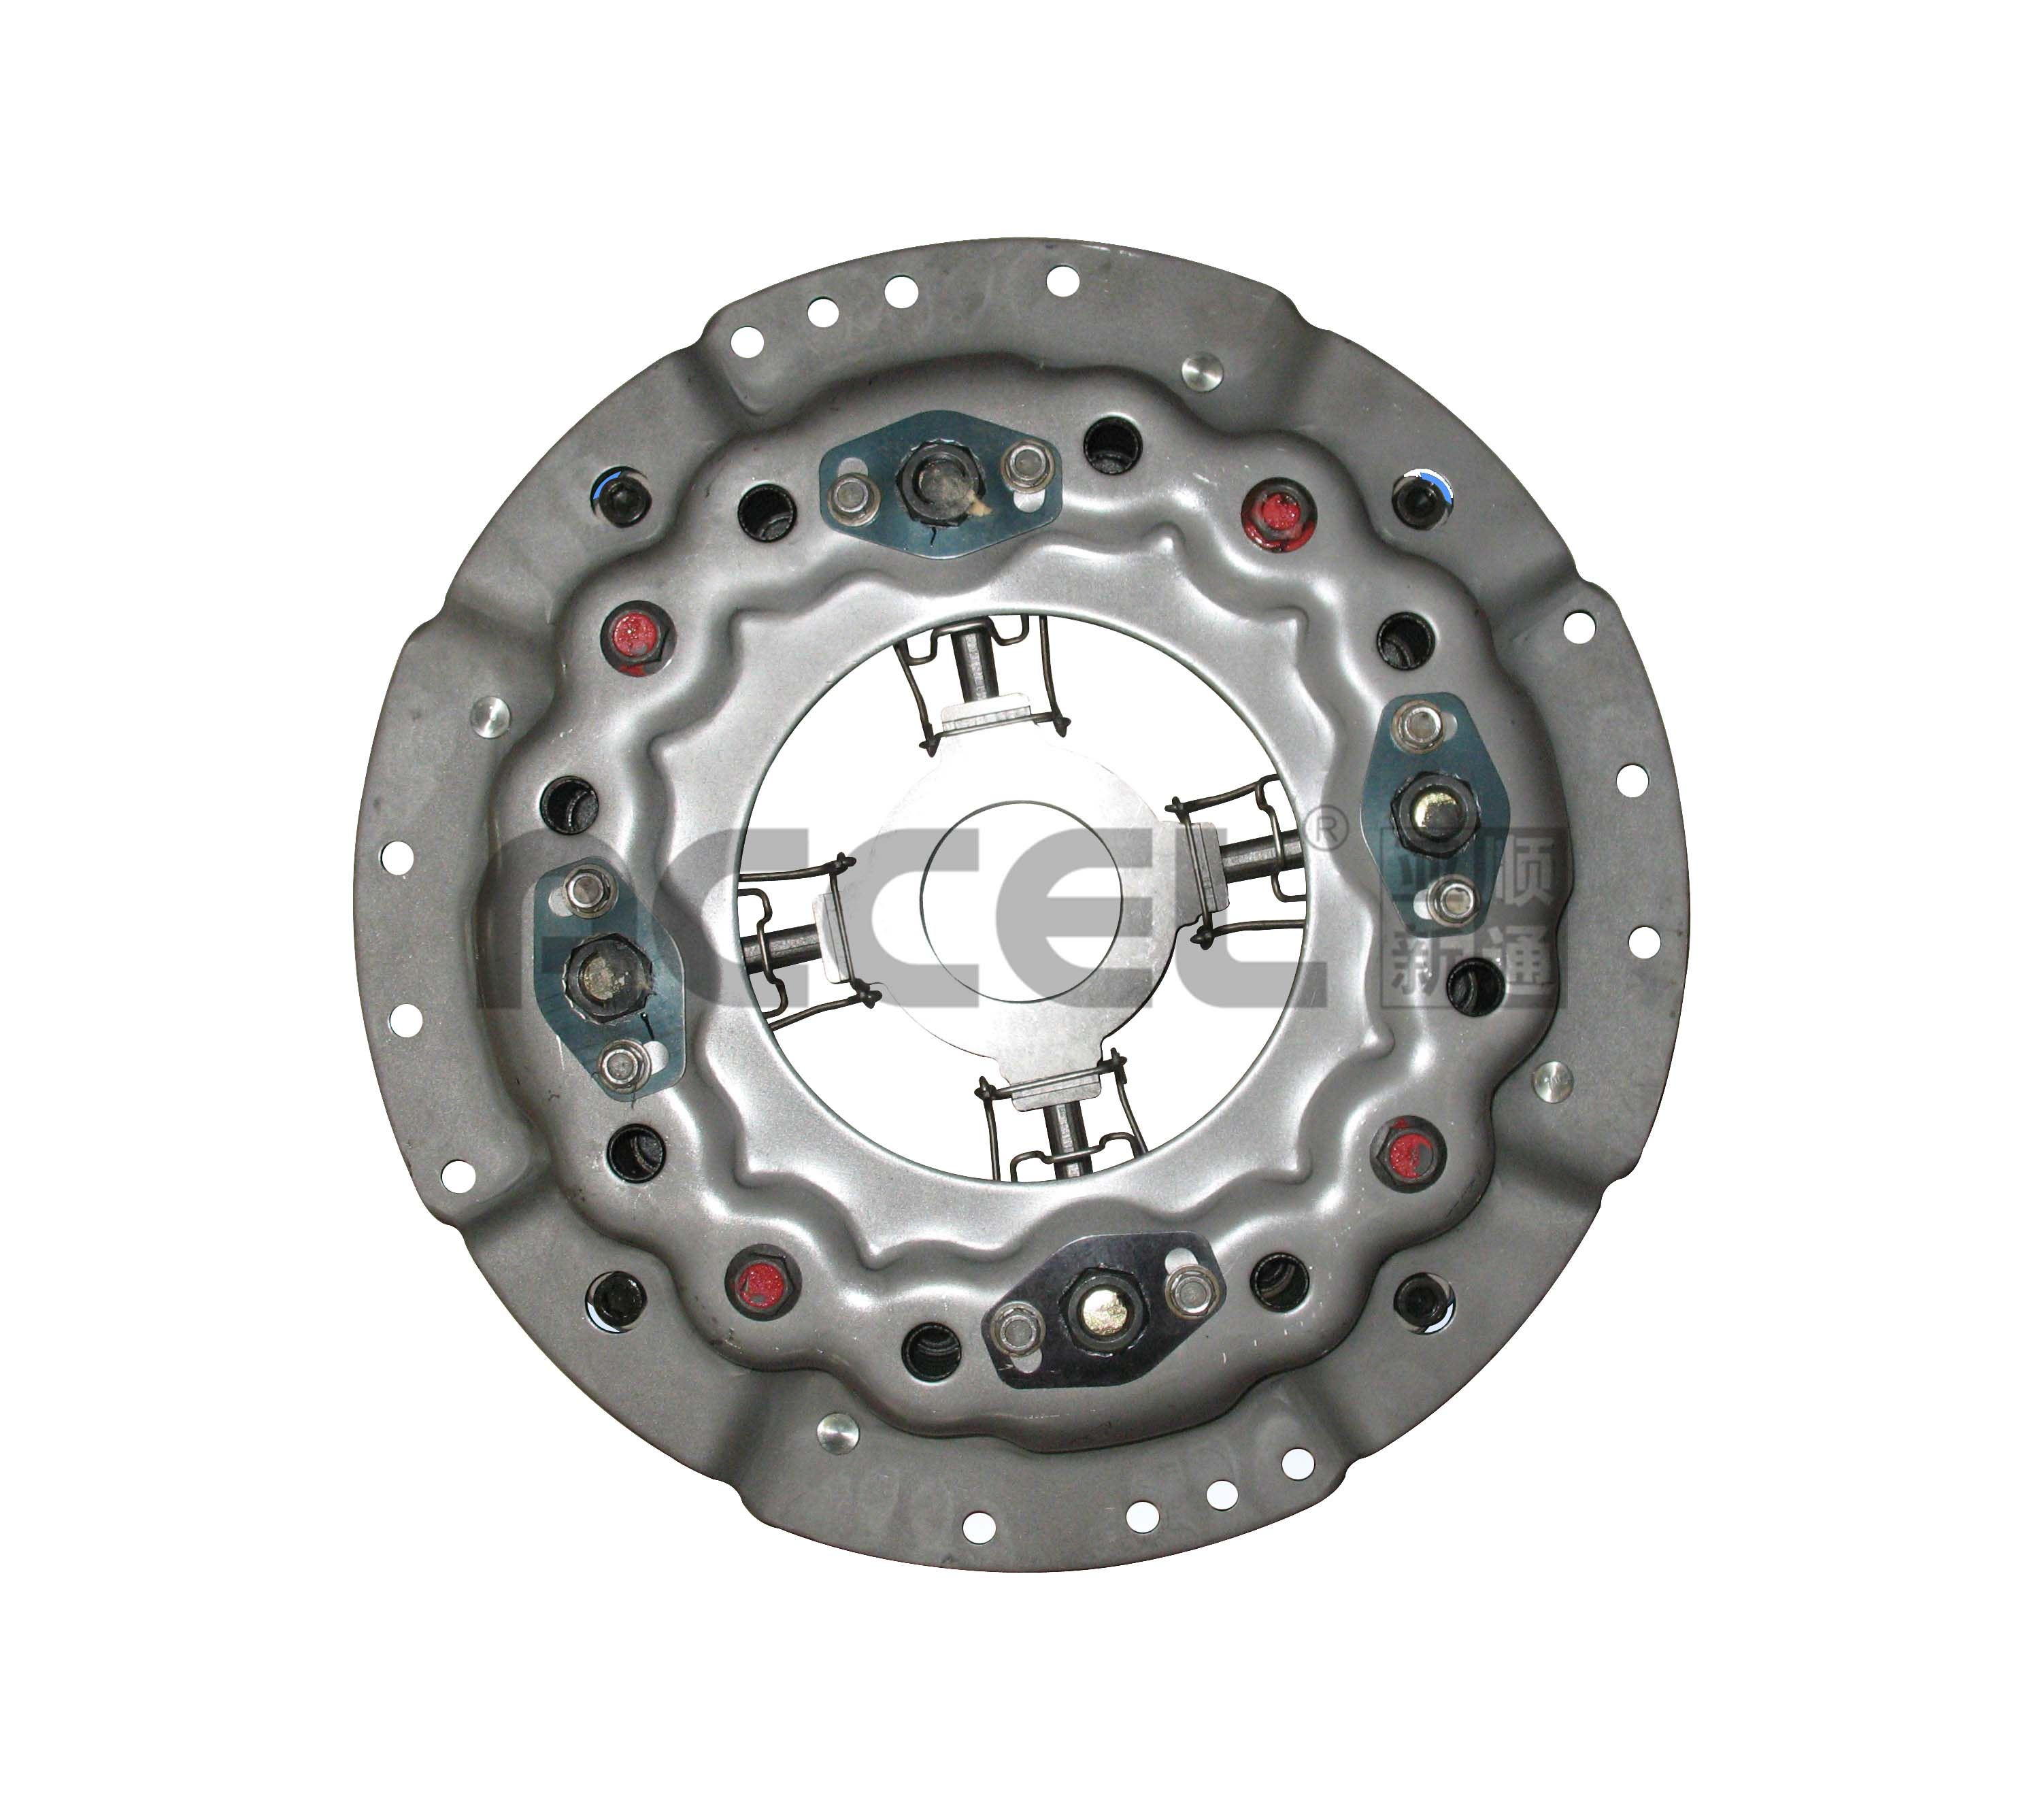 Clutch Cover/OE:NULL/380*220*405/CND-007/NISSAN DIESE L/LY250